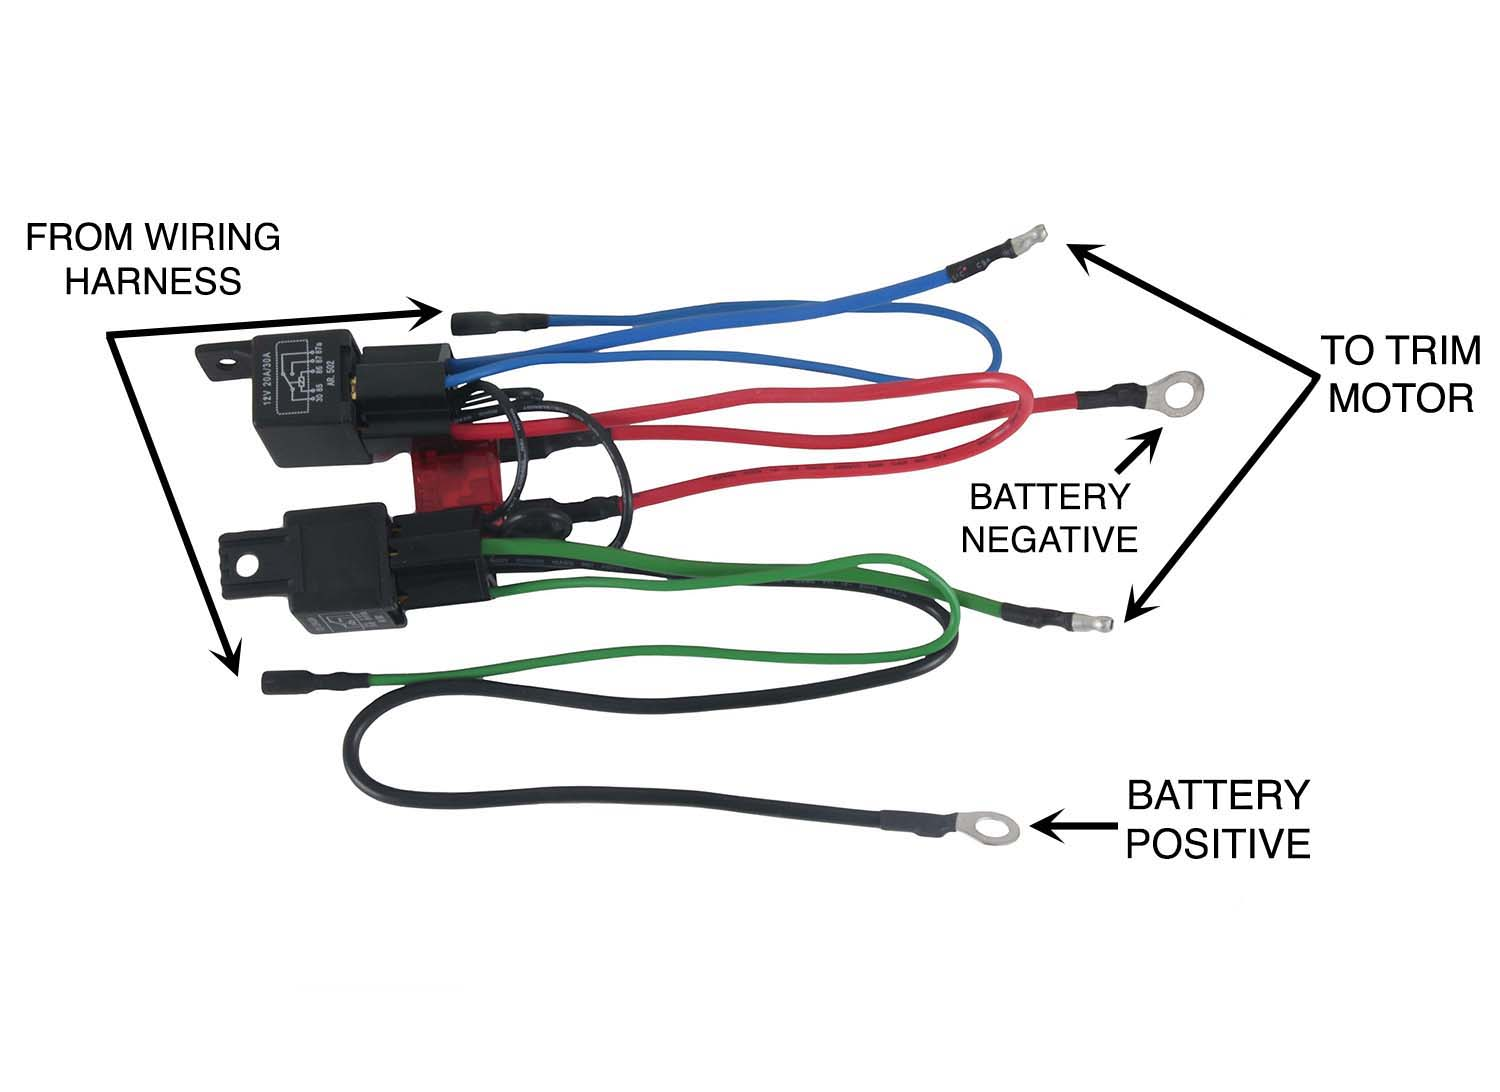 hight resolution of new wiring harness convert 3 wire tilt trim motor to 2 suzuki df150 tilt trim wiring mercury tilt trim wiring diagram